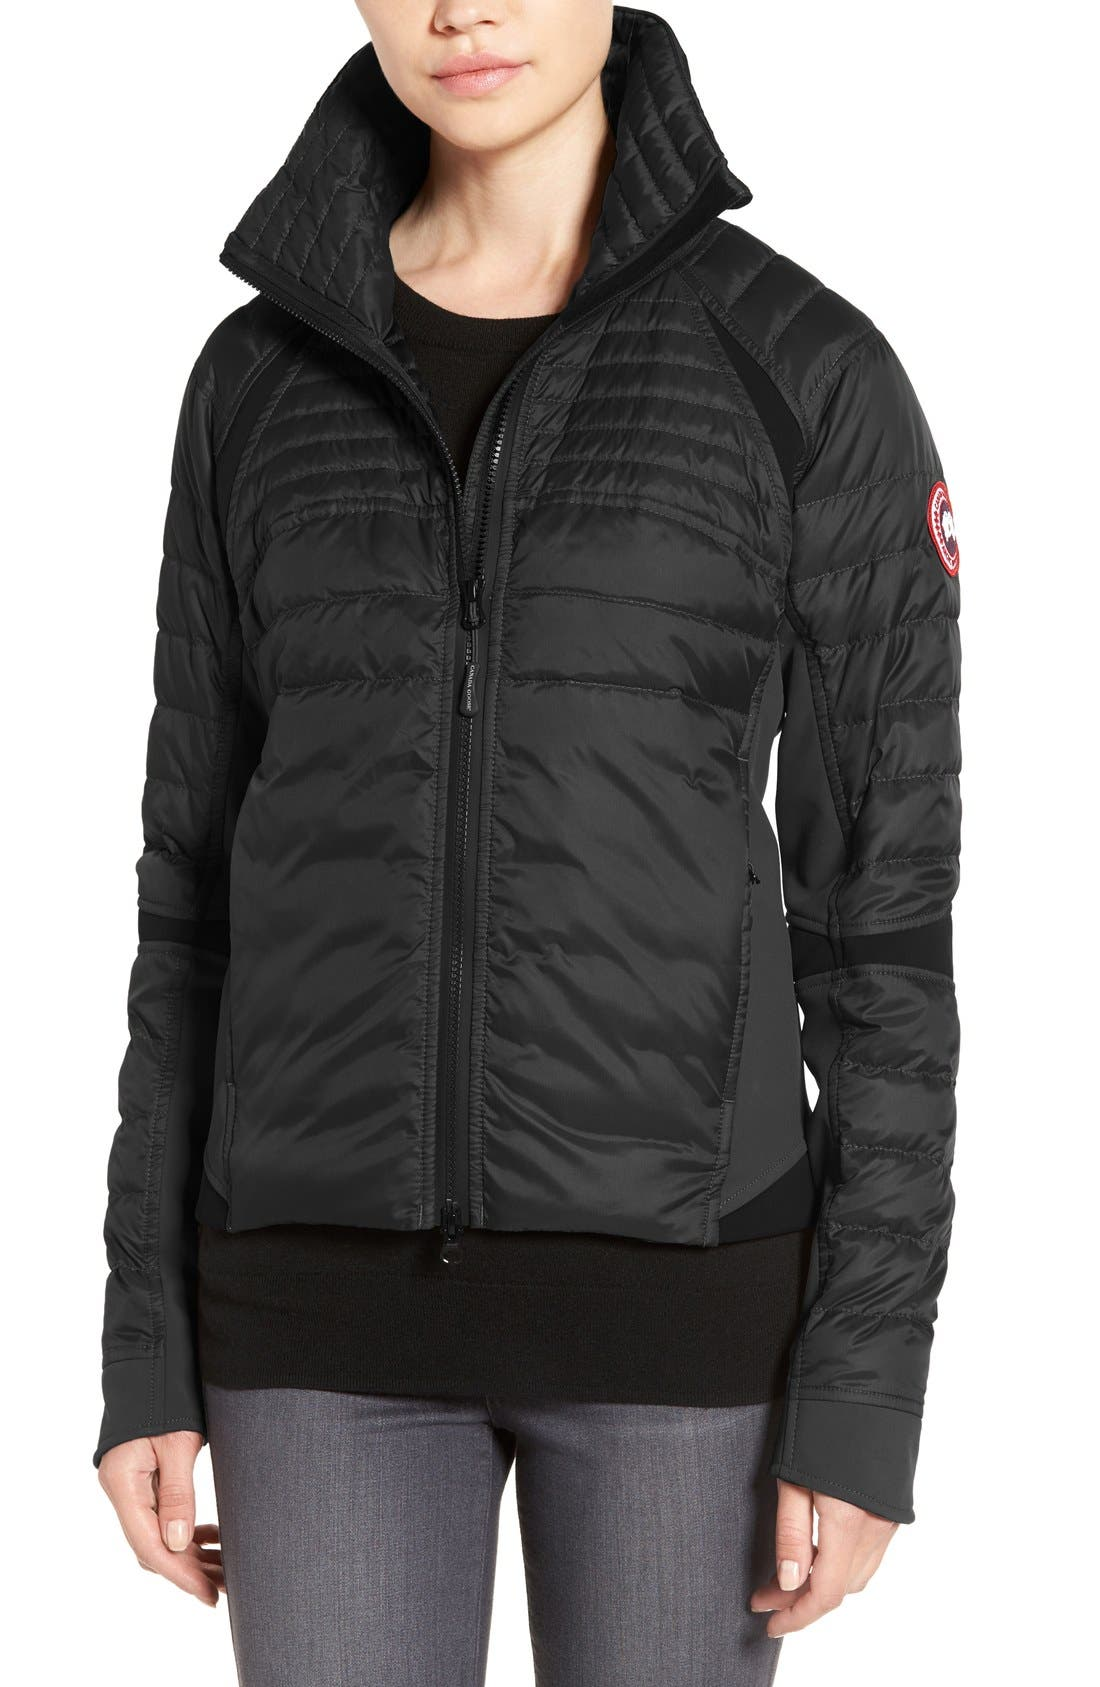 Hybridge Perren Jacket,                             Main thumbnail 1, color,                             BLACK